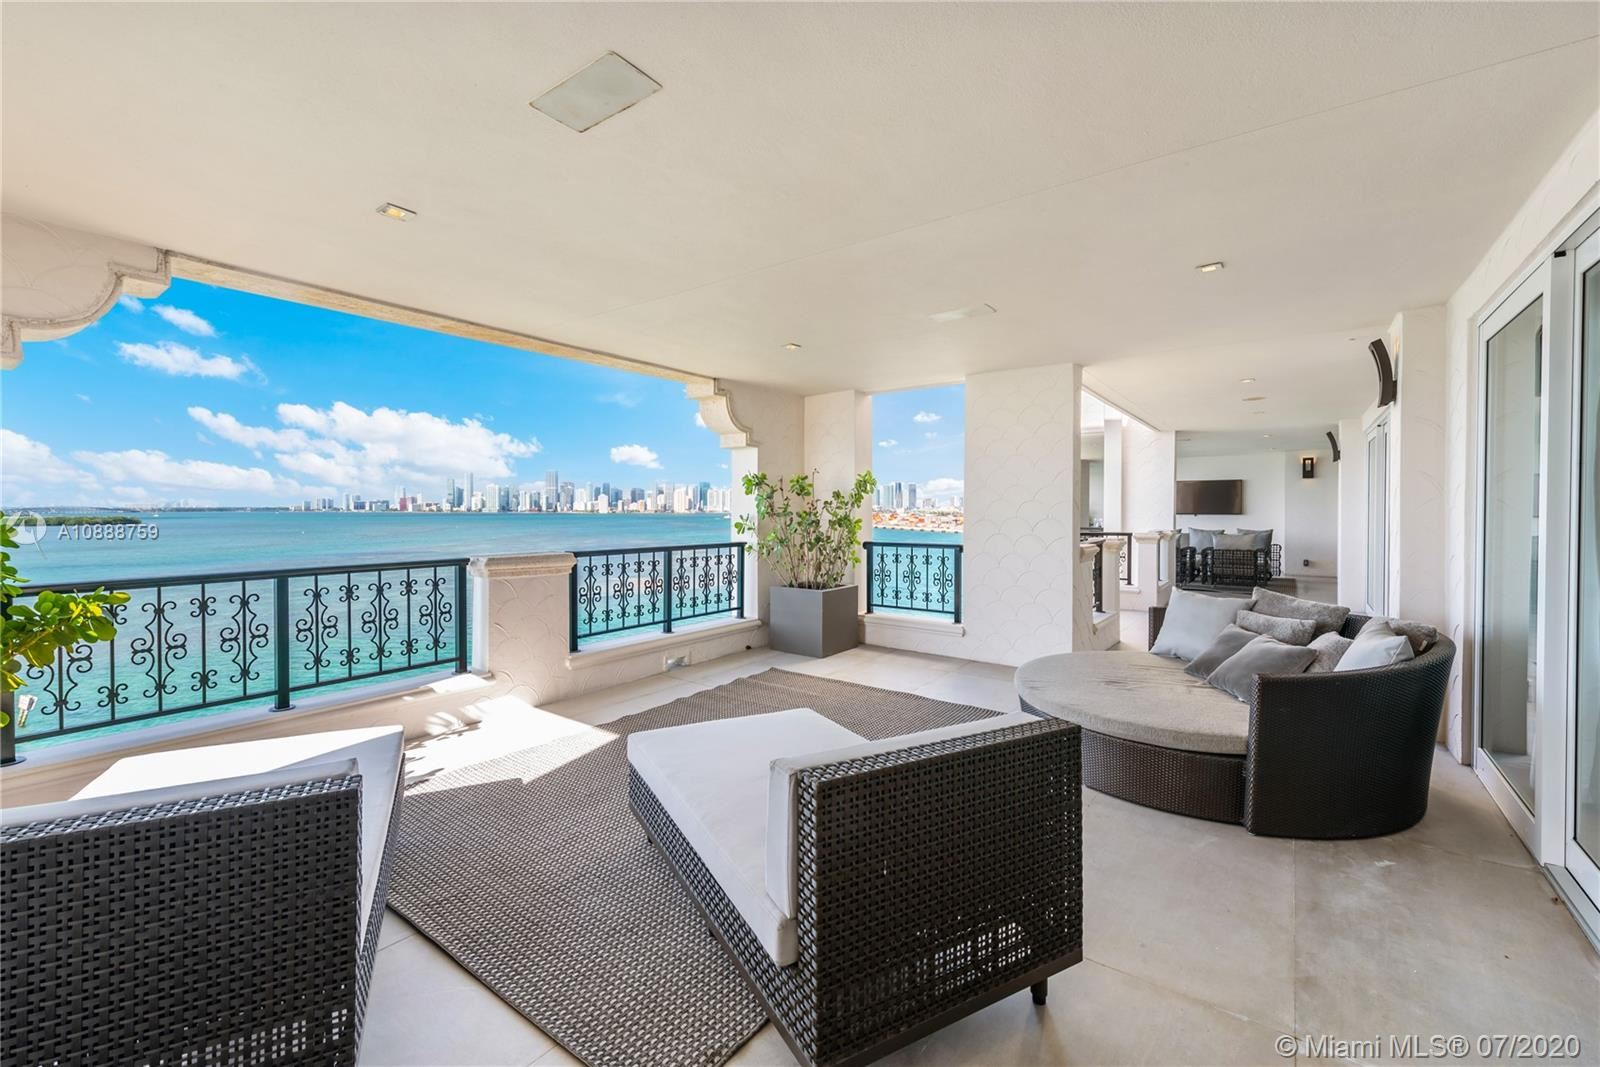 Photo 2 of Listing MLS a10888759 in 5282 Fisher Island Dr #5282 Miami FL 33109